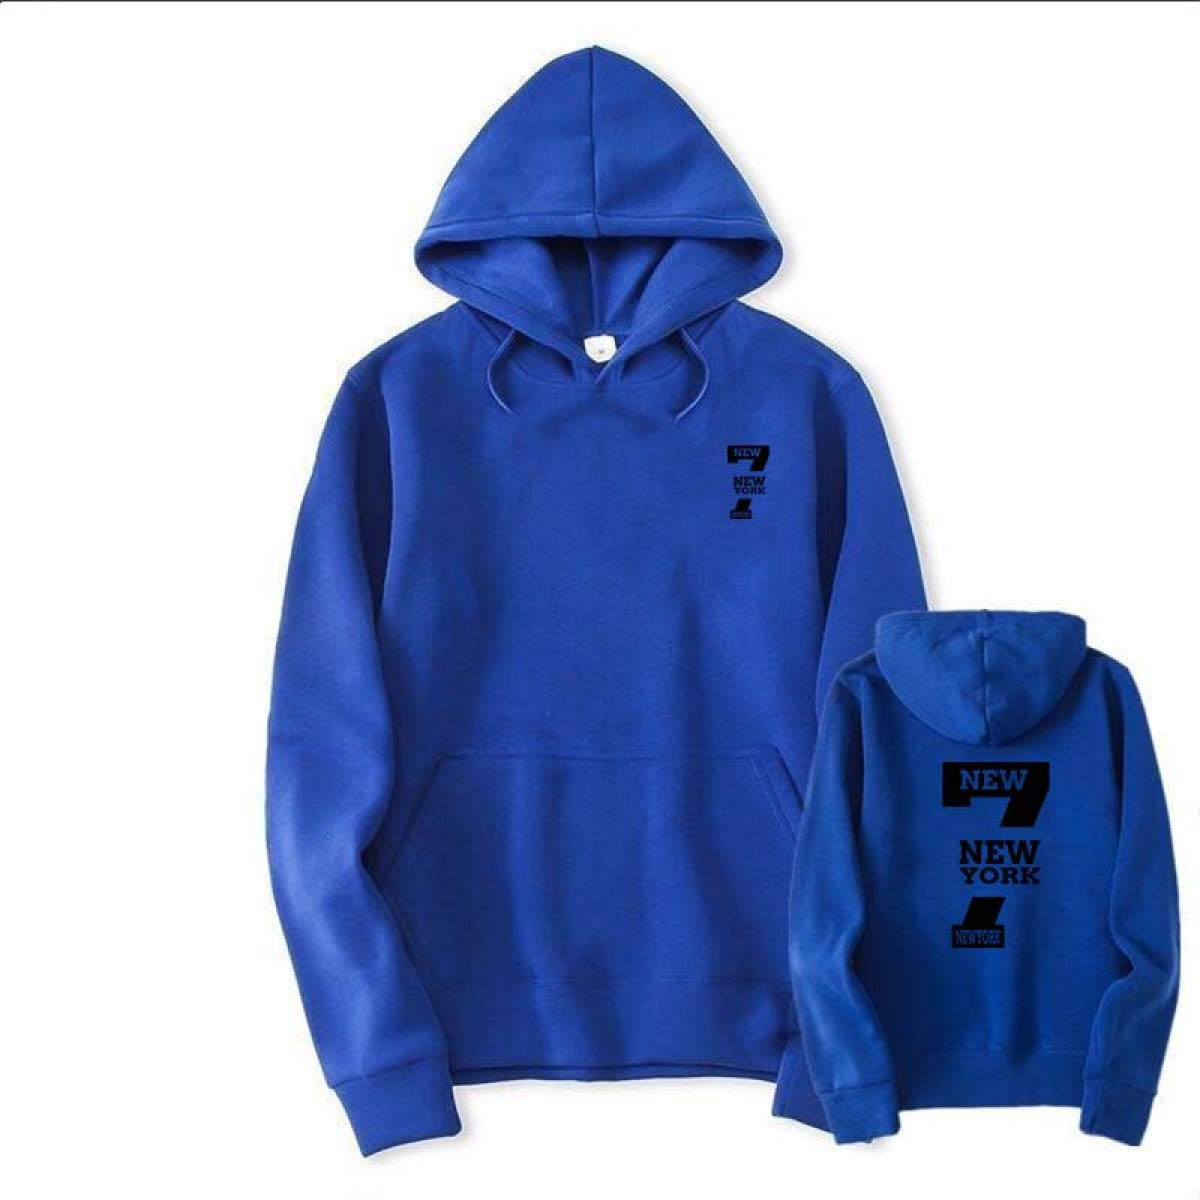 Amazon.com: WEEKEND SHOP Astroworld Hoodies for Men Astroworld Hoodie Streetwear Man Pullover Sweatshirt: Clothing